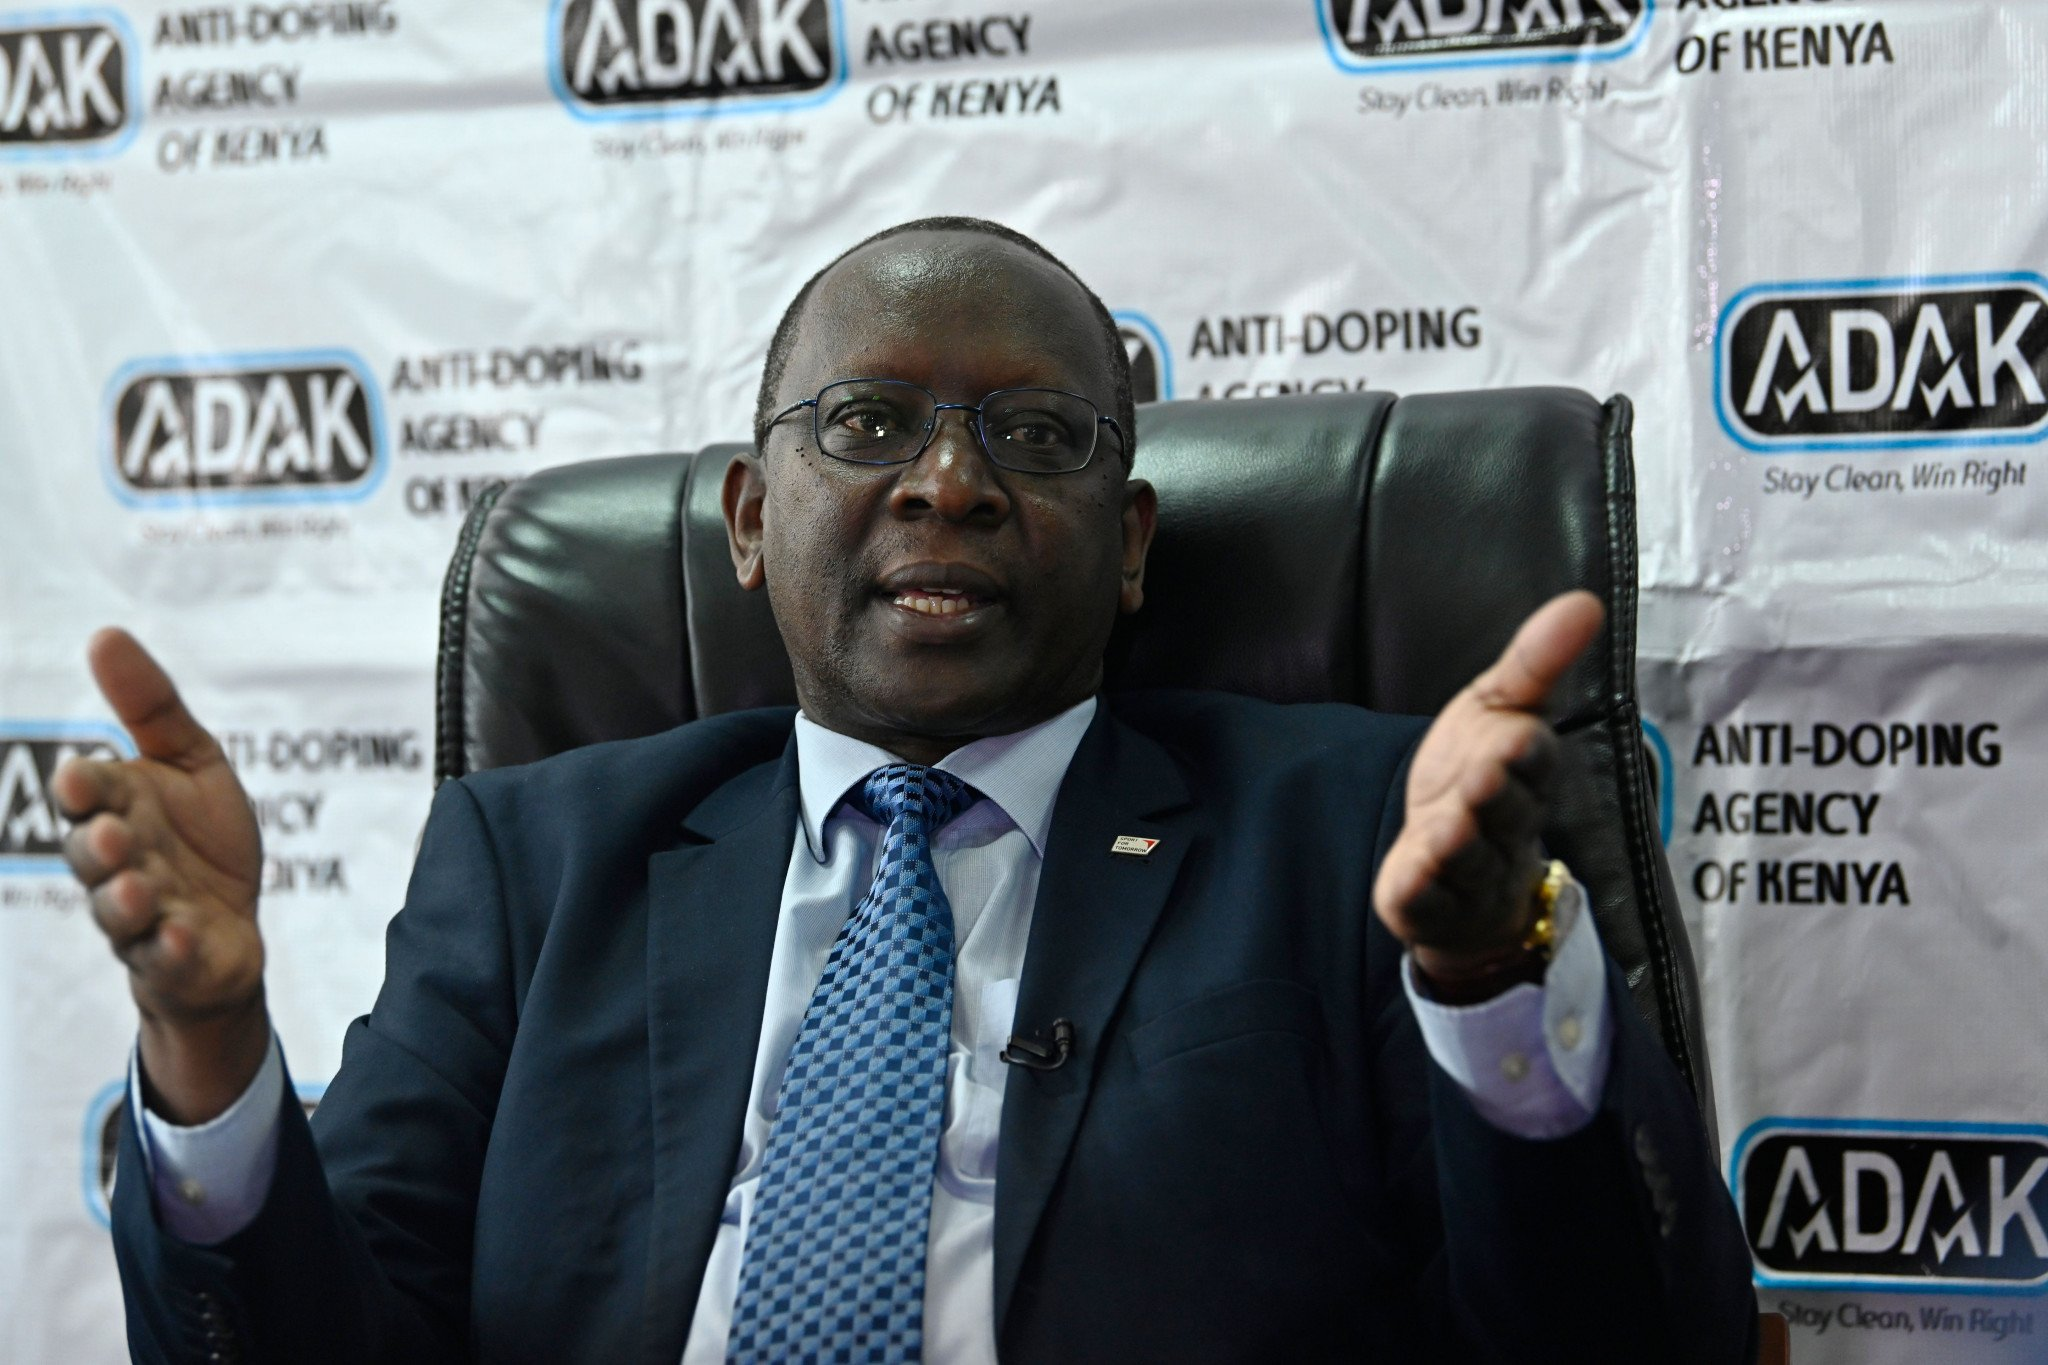 Anti-Doping Agency of Kenya insists activities have not been reduced